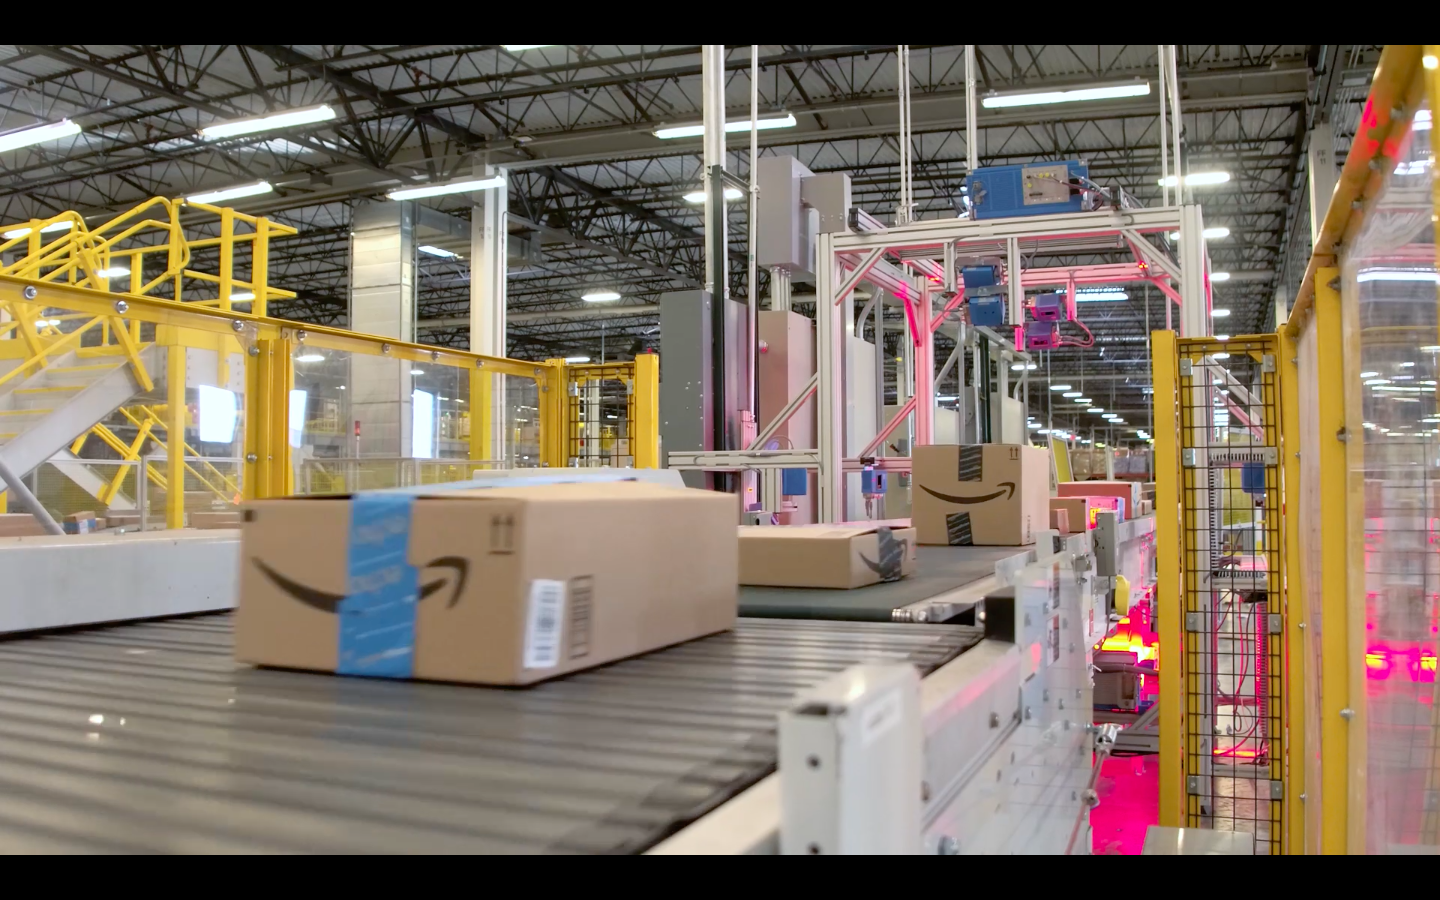 FDA wants to regulate Amazon's fulfillment centers as food